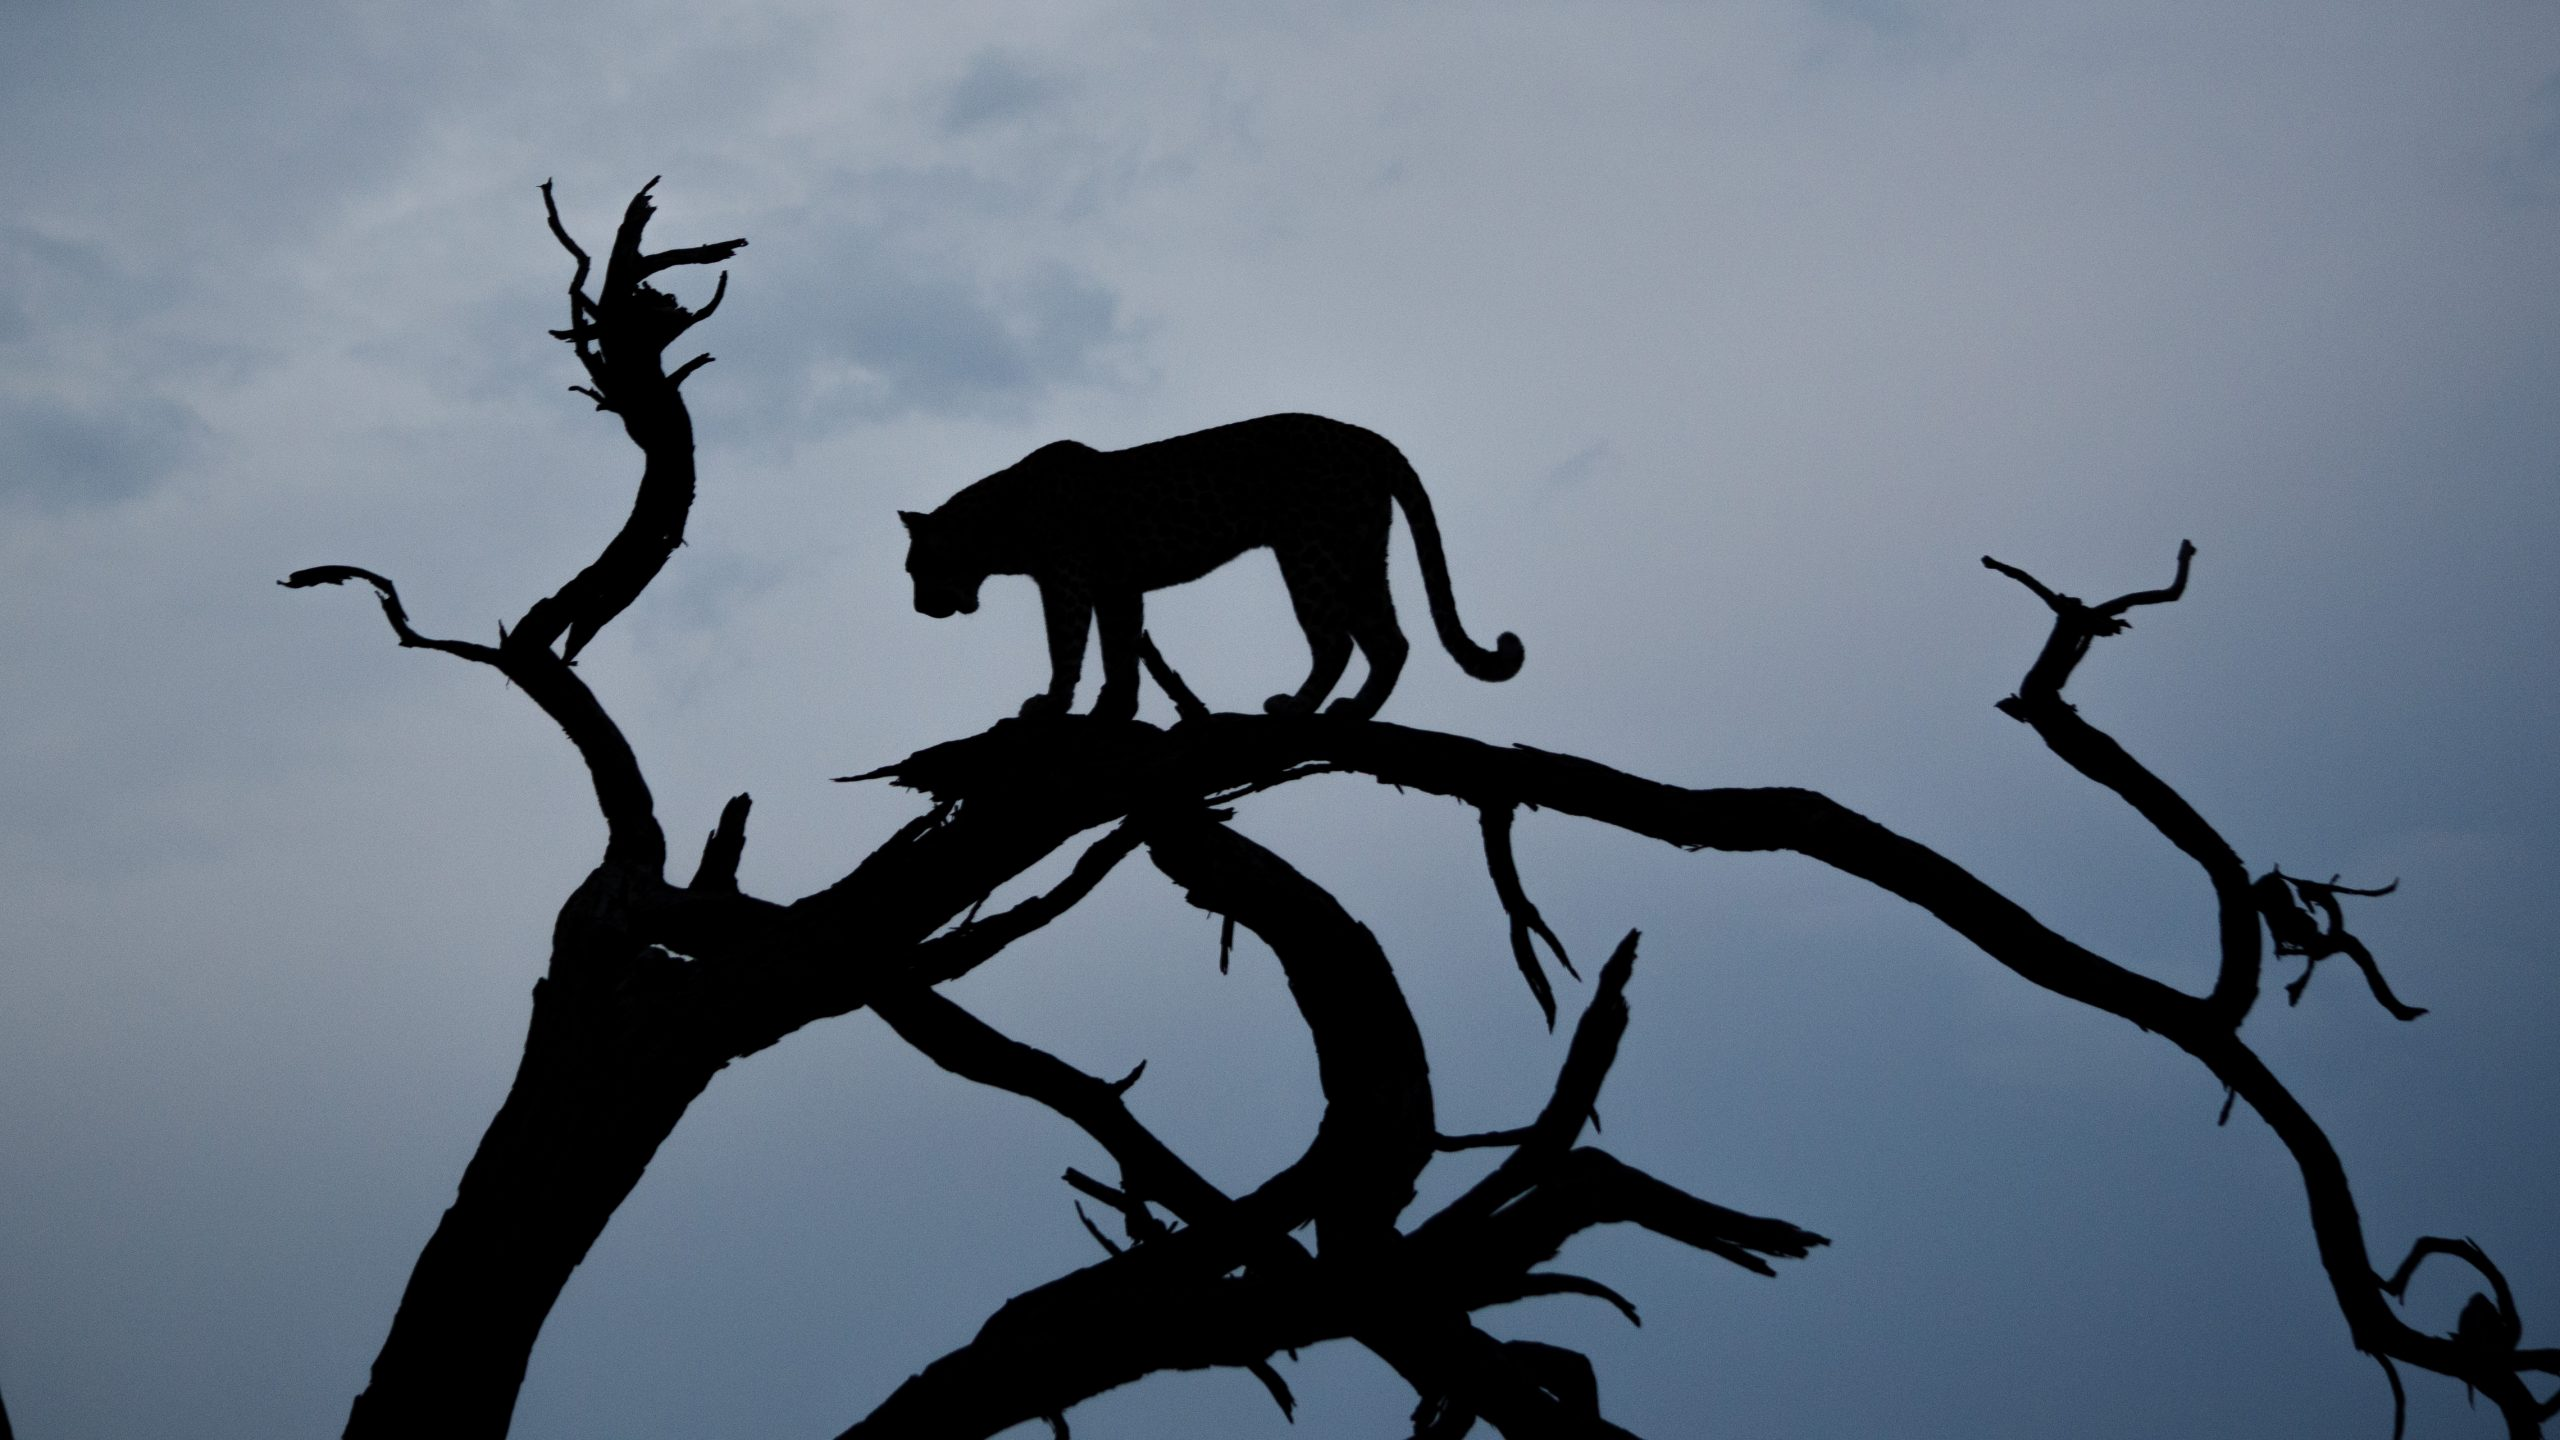 branch silhouette